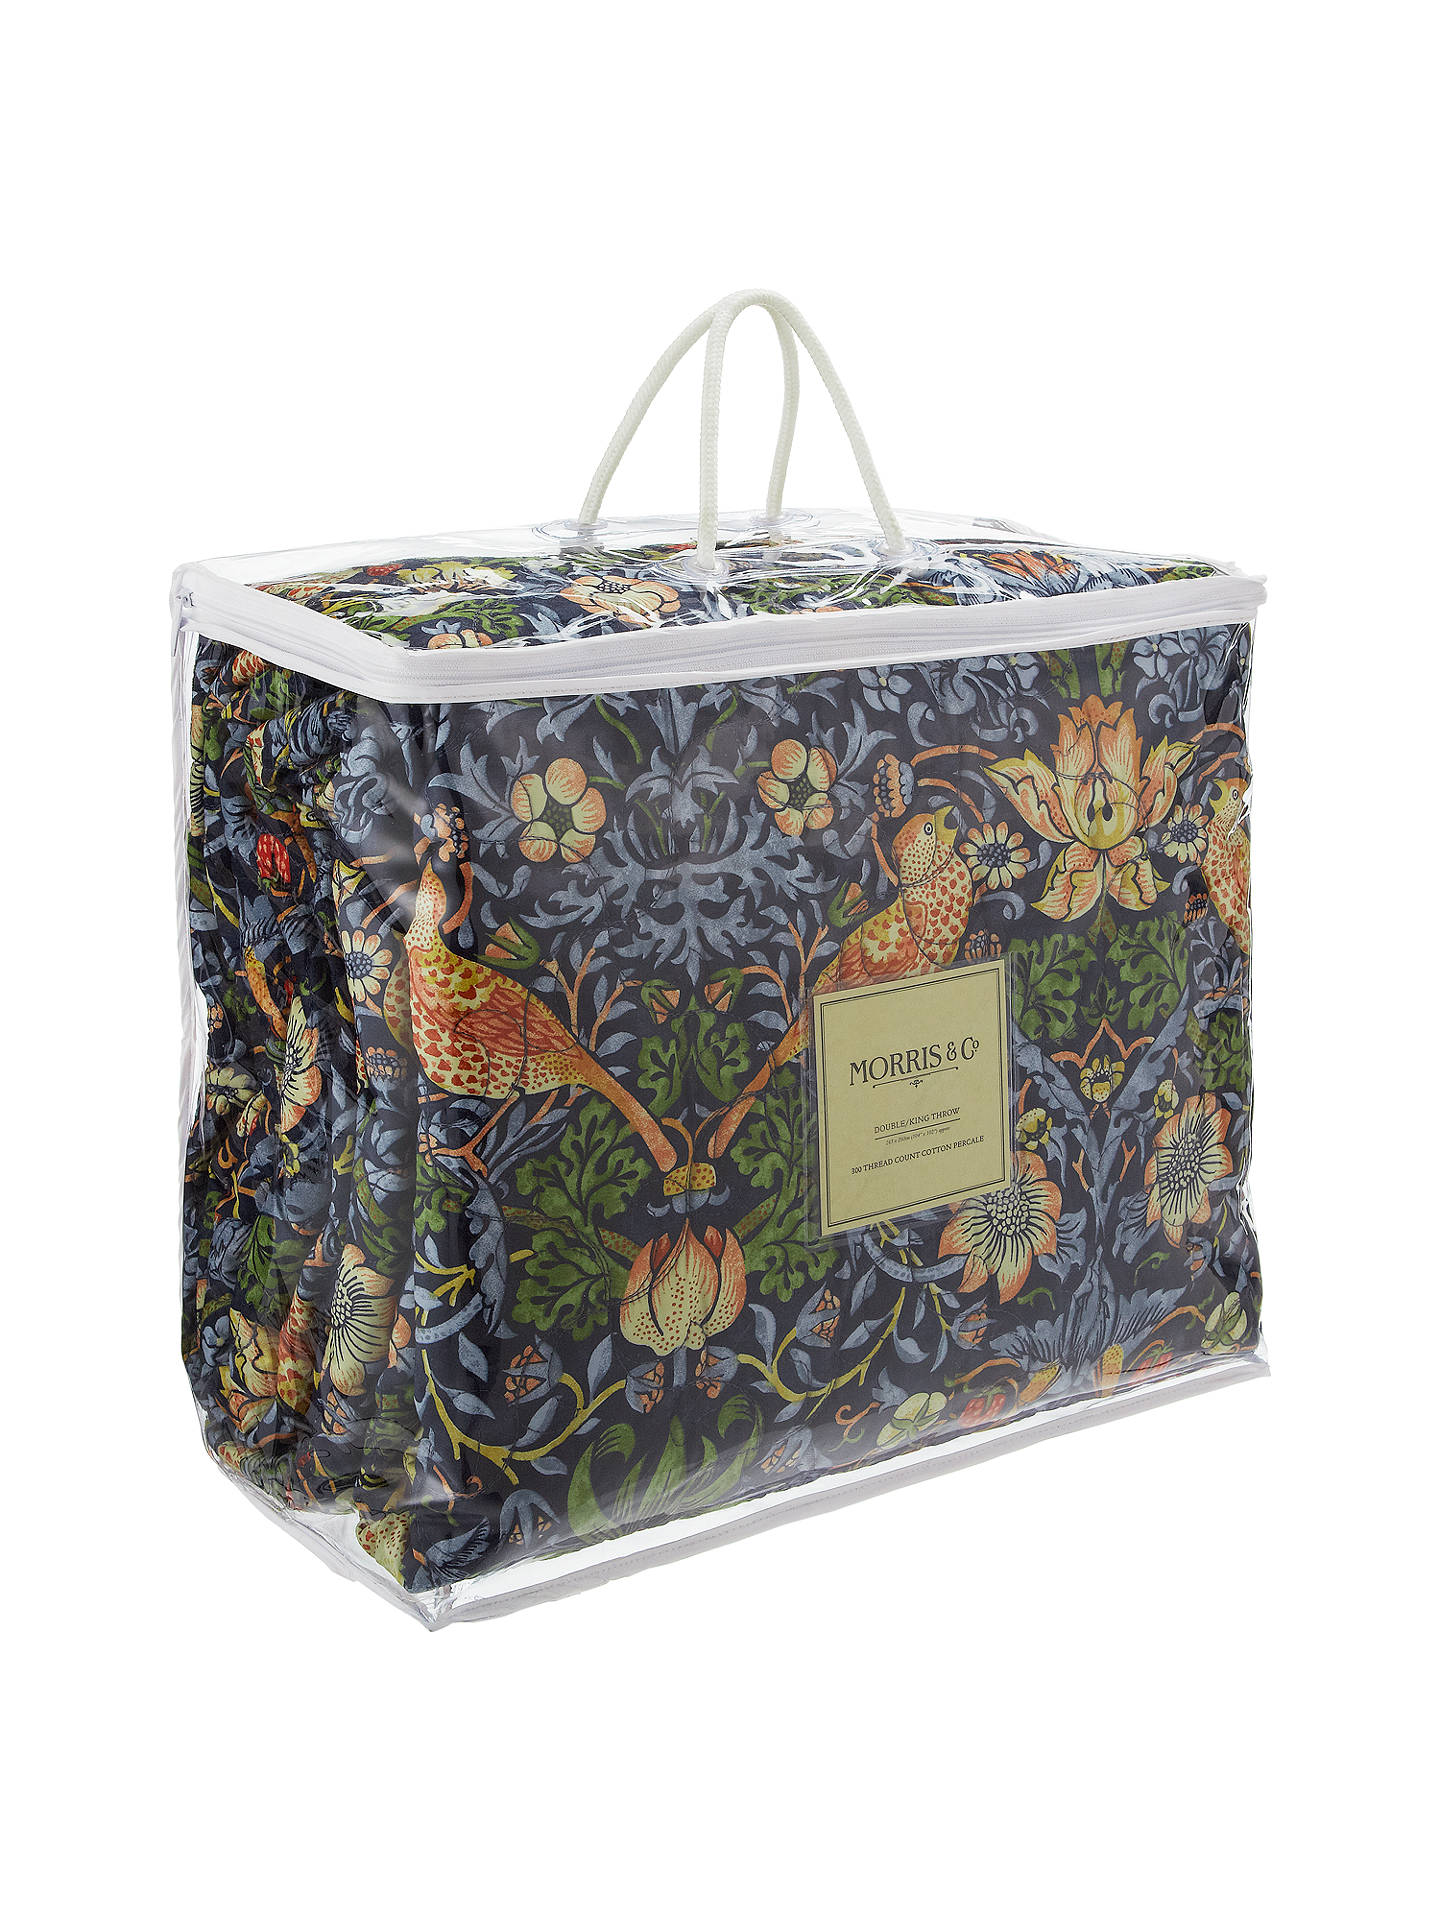 Buy Morris & Co. Strawberry Thief Bedspread, Blue Online at johnlewis.com